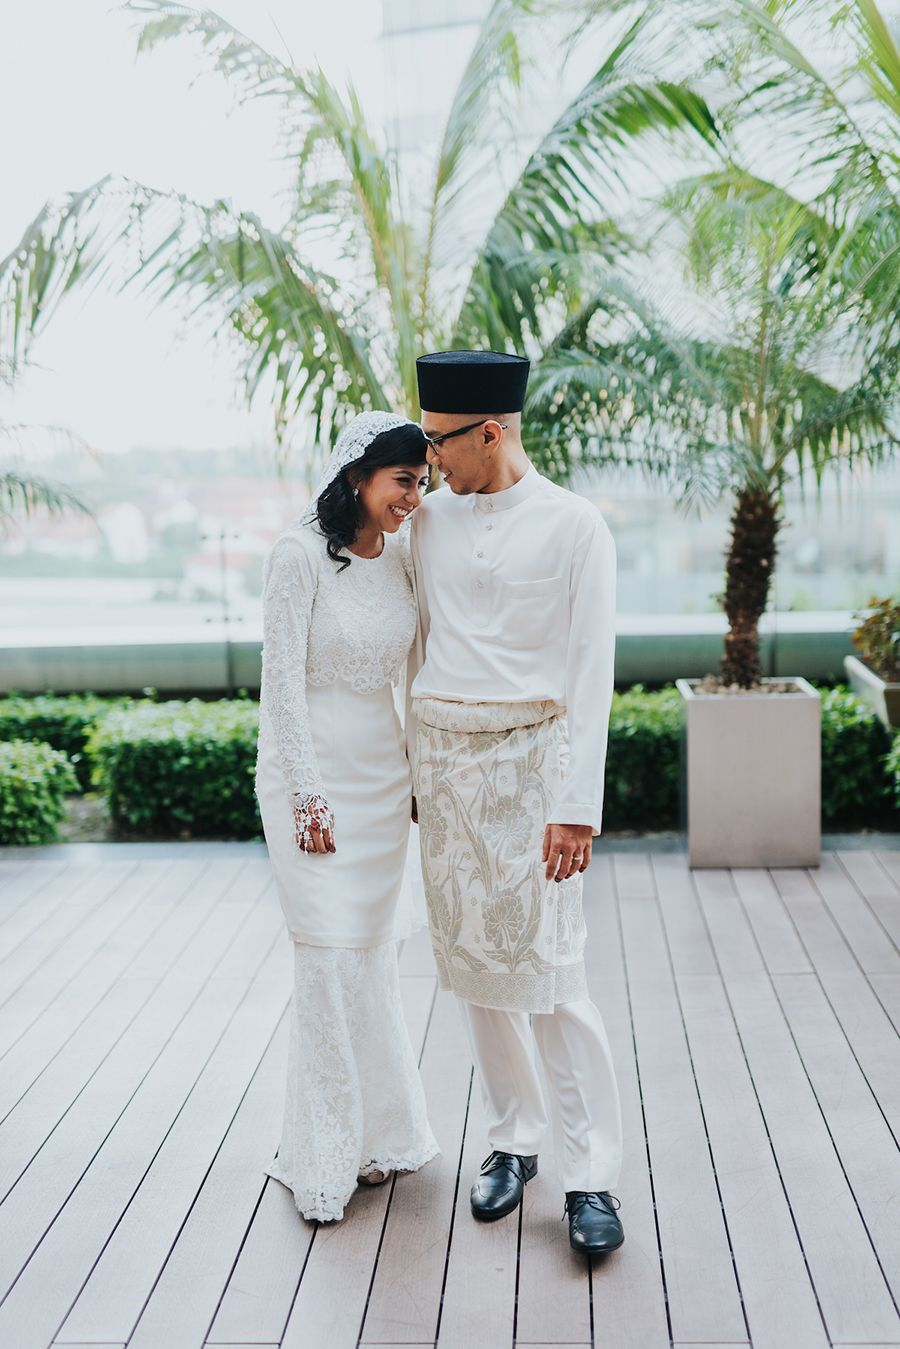 Bride and groom in traditional muslim wedding outfits and pose for